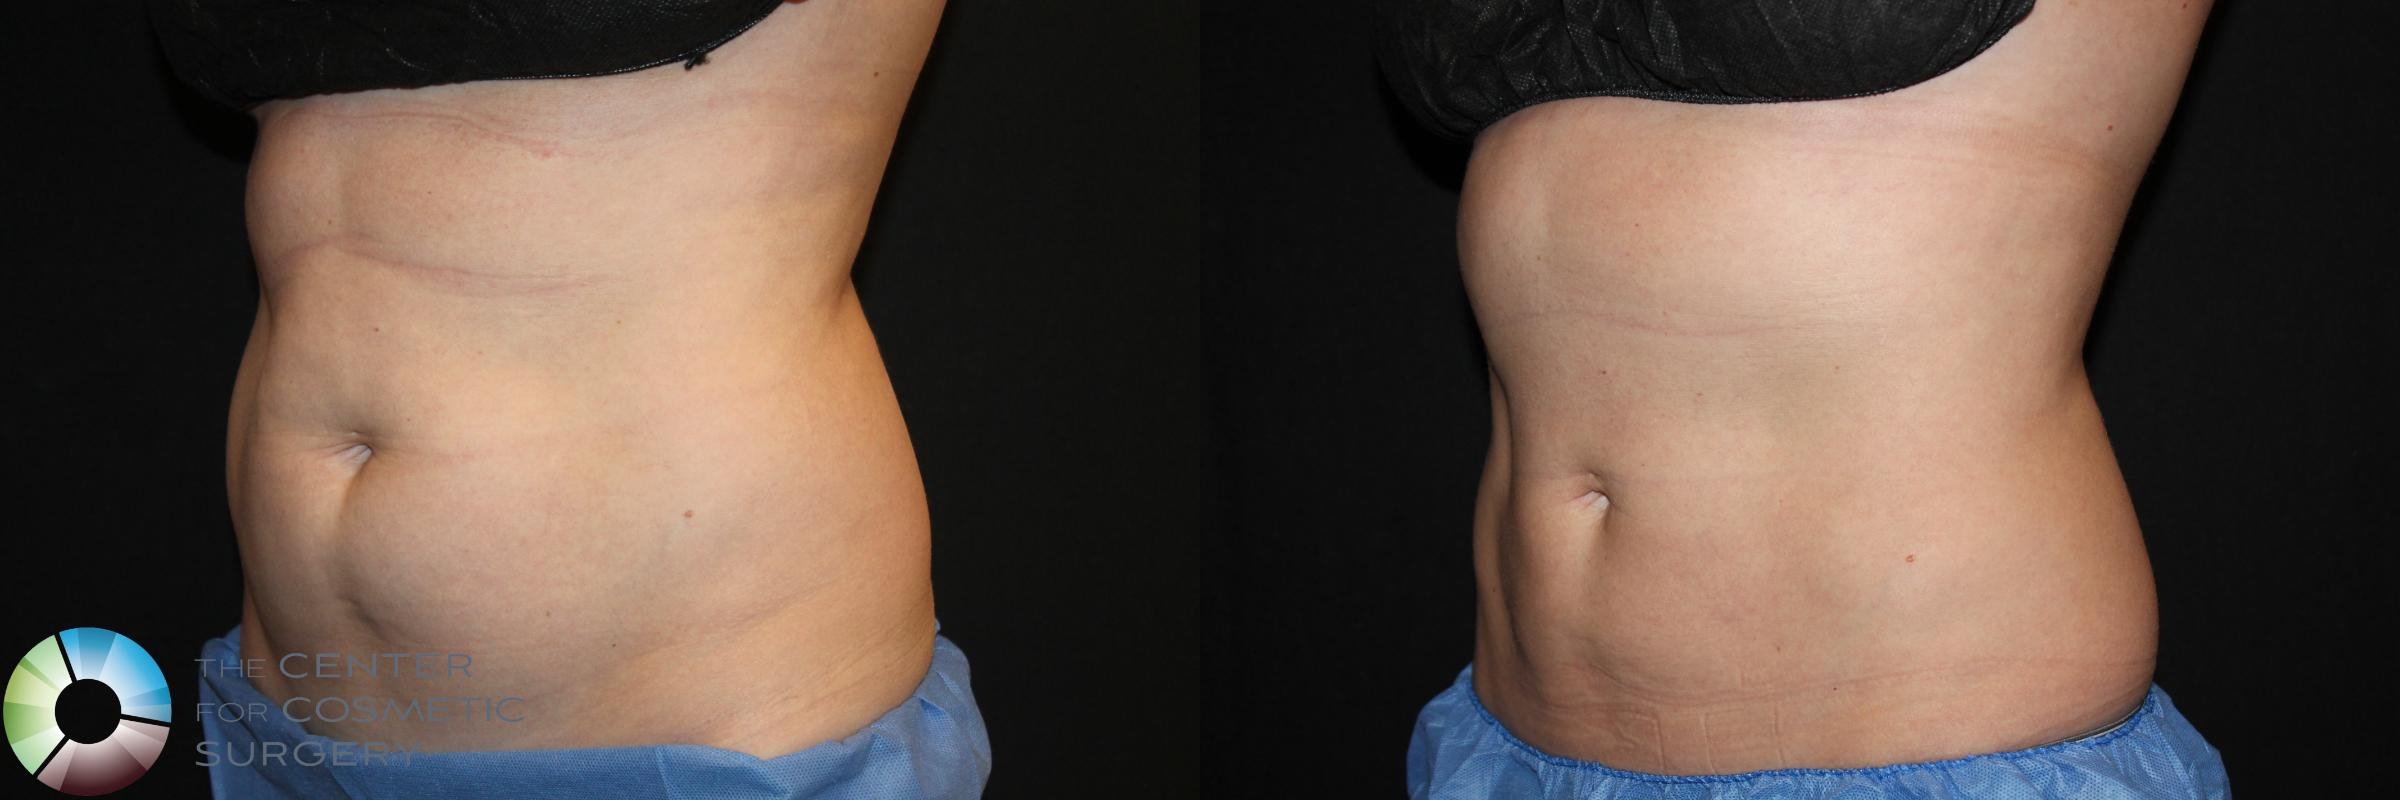 CoolSculpting Case 764 Before & After View #2 | Golden, CO | The Center for Cosmetic Surgery